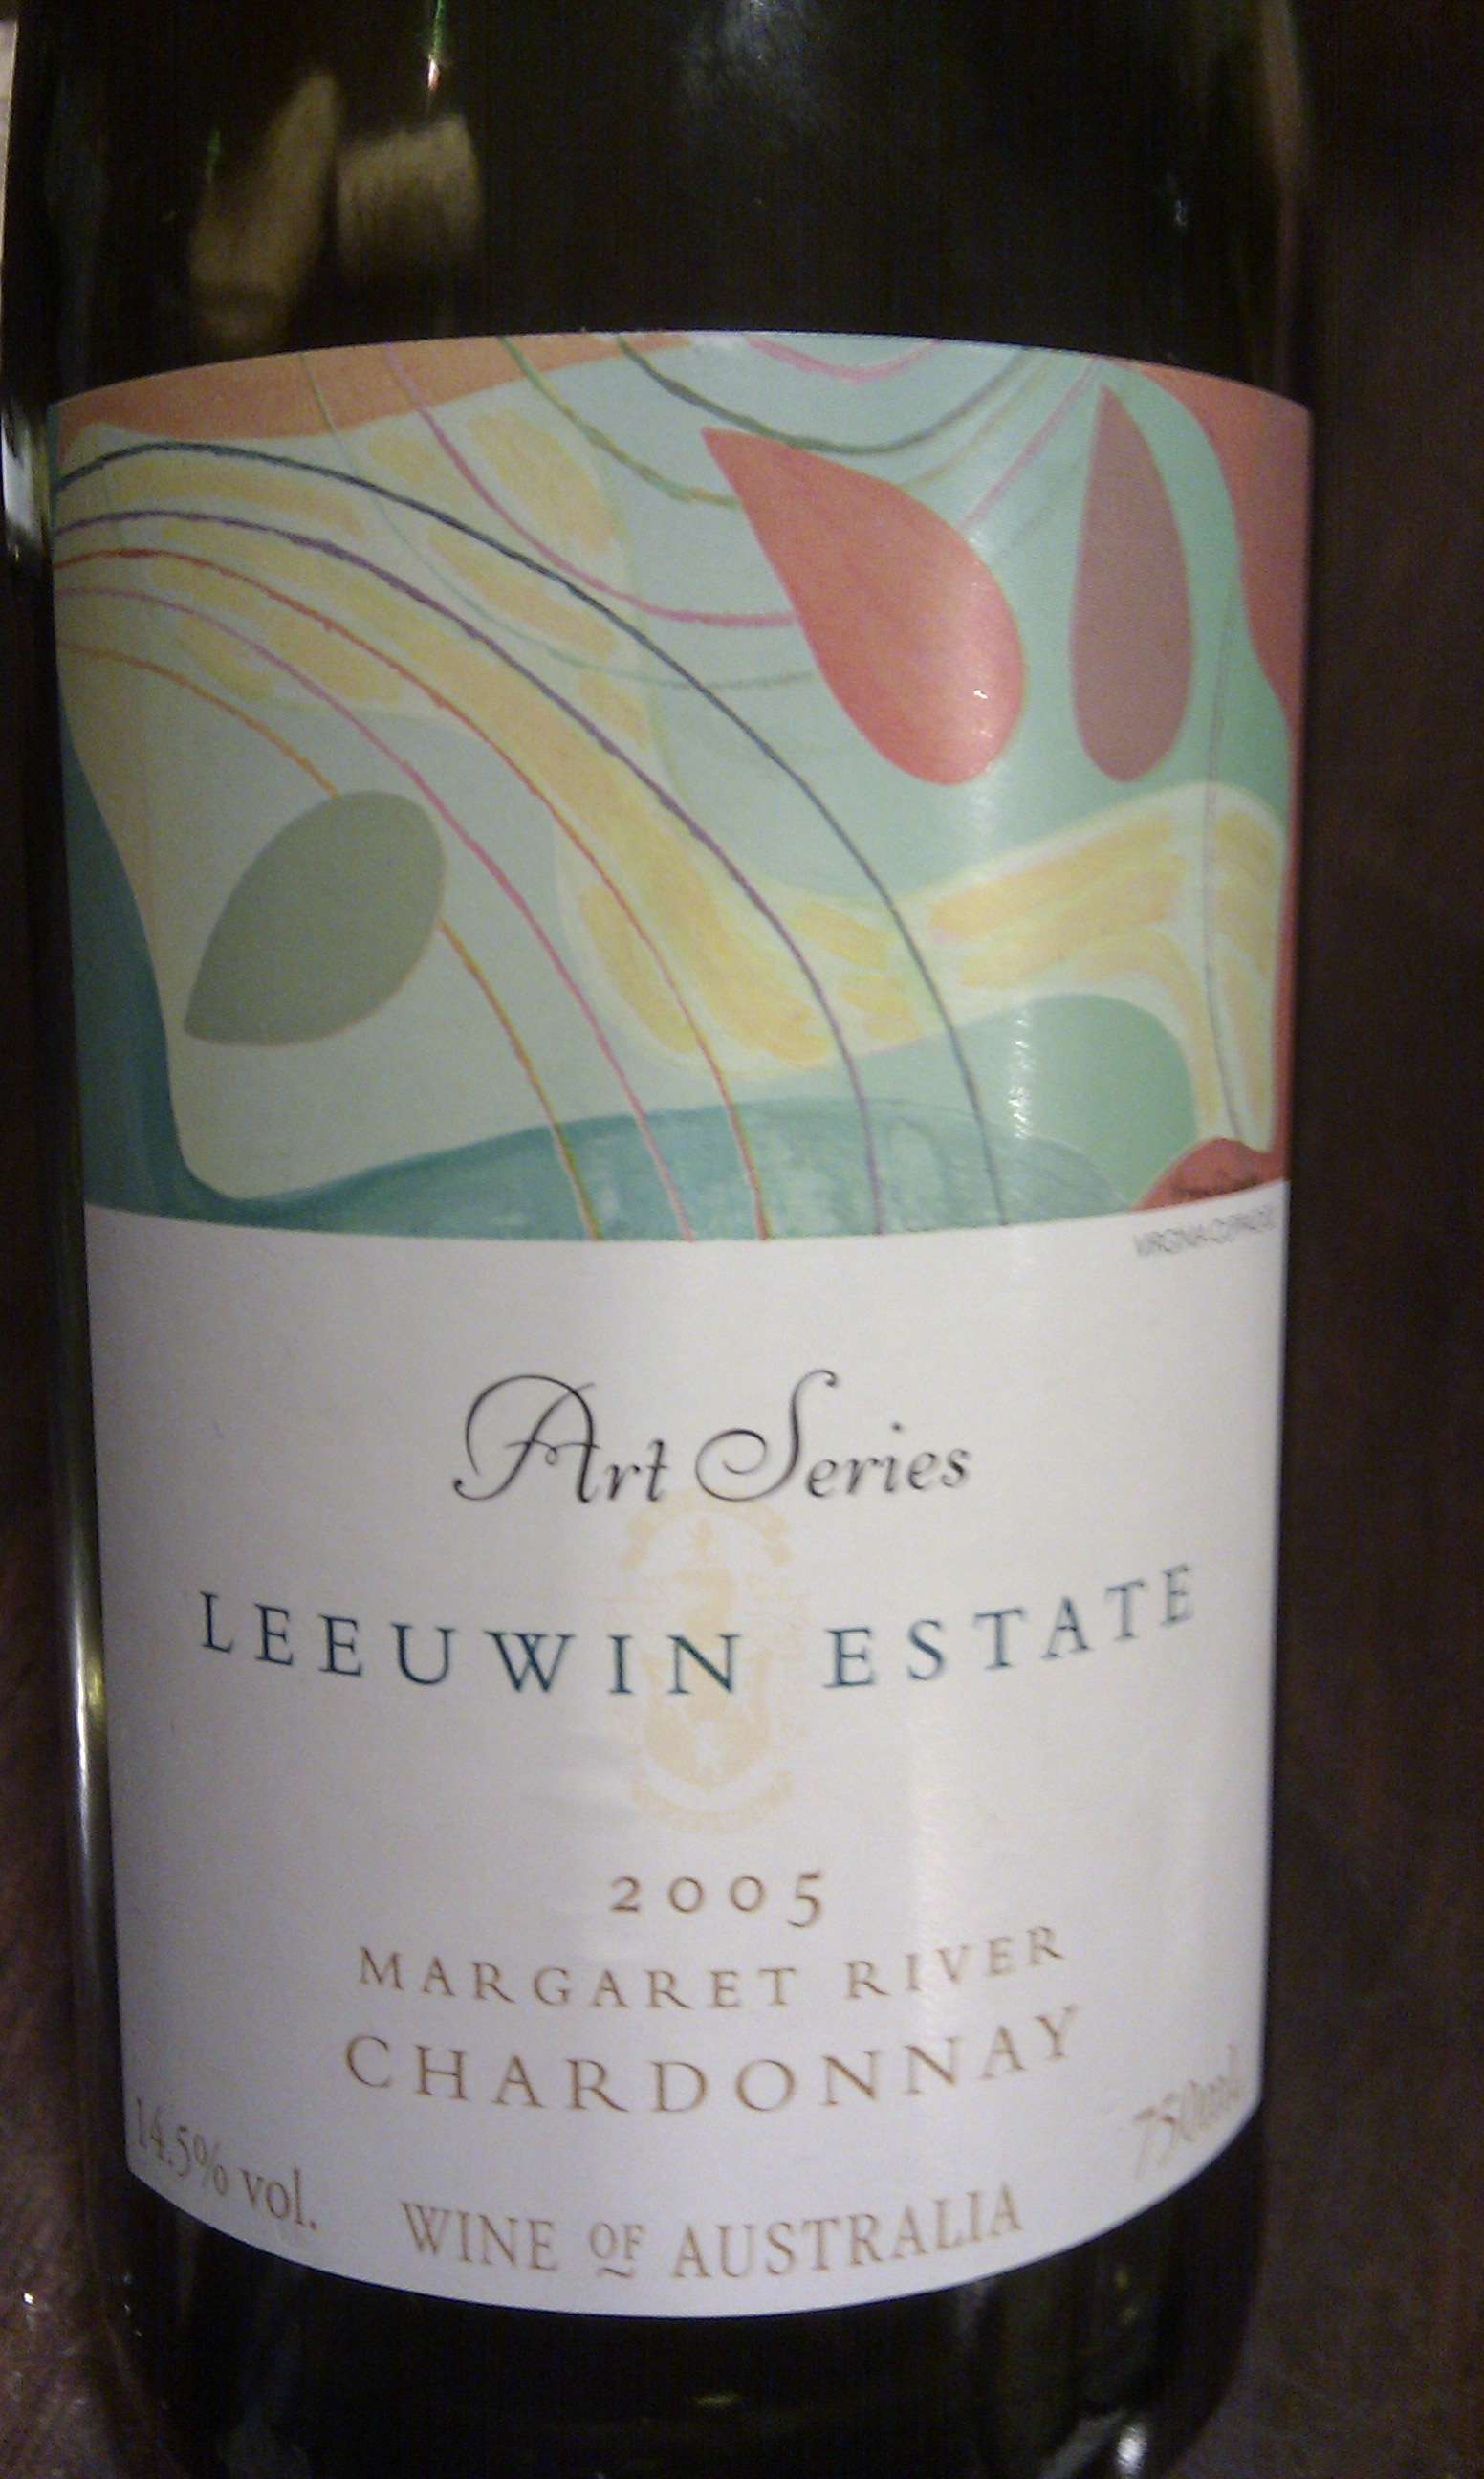 2005 Leeuwin Estate 'Art Series' Chardonnay